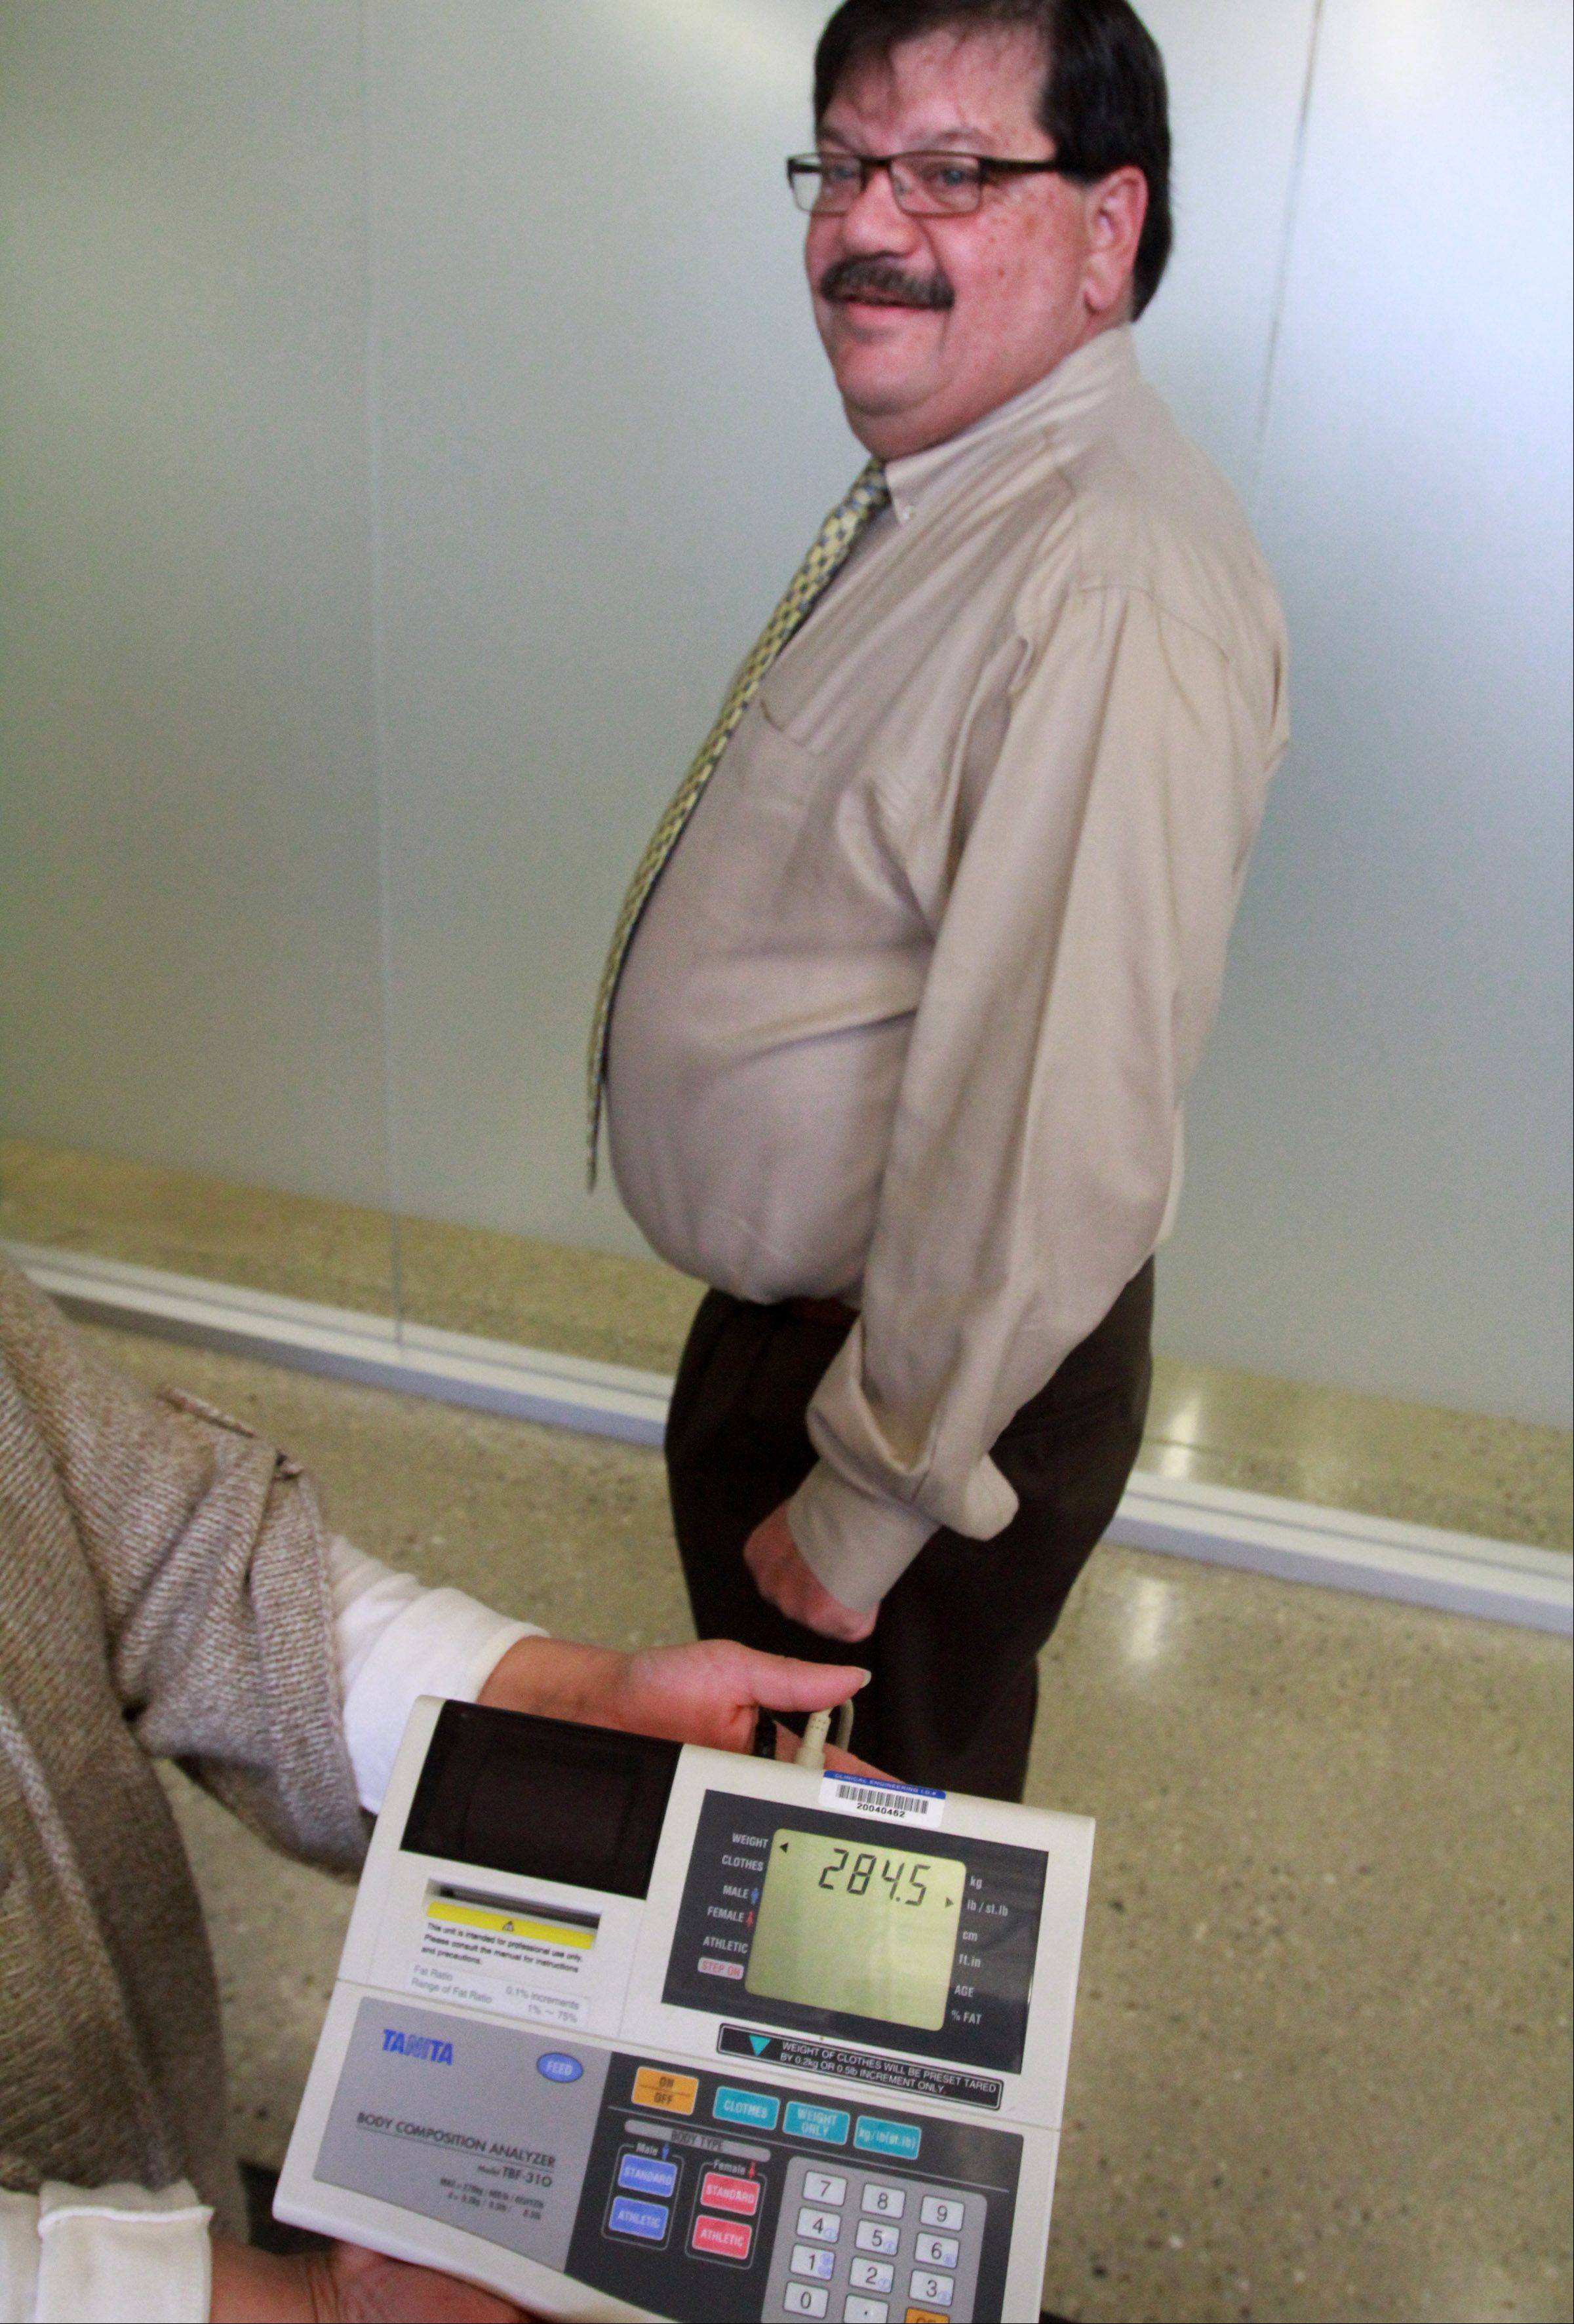 Hanover Park Mayor Rod Craig weighed in at 284.5-pounds during the final day of an eight-week weight loss challenge with Carol Stream Village President Frank Saverino. That's 20 pounds less than when the contest began.